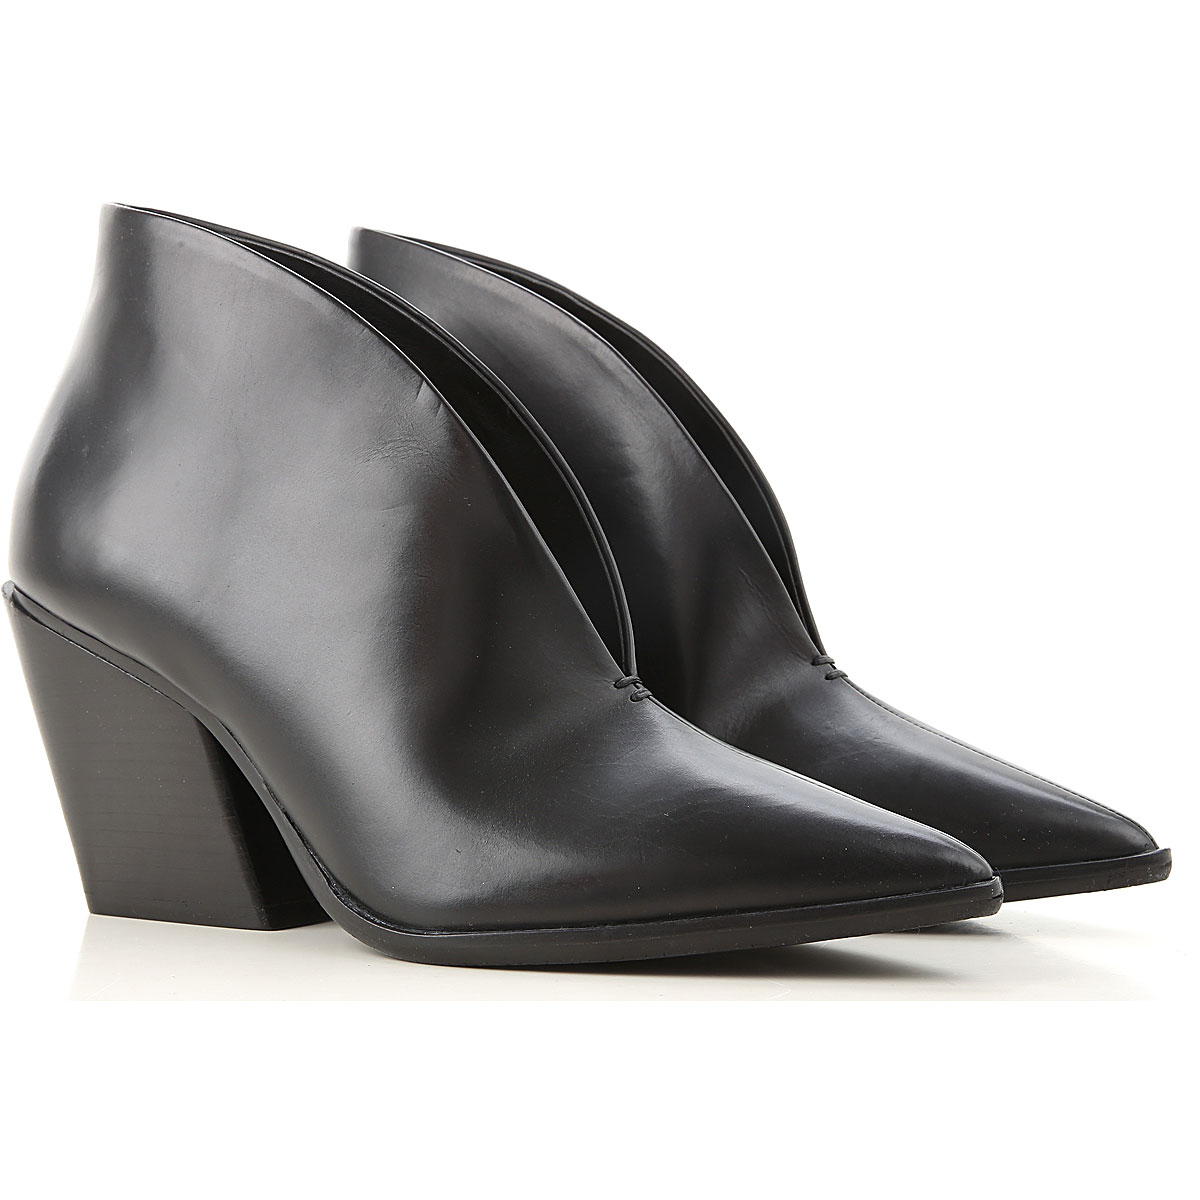 Elvio Zanon Boots for Women, Booties On Sale, Black, Leather, 2019, 6 9